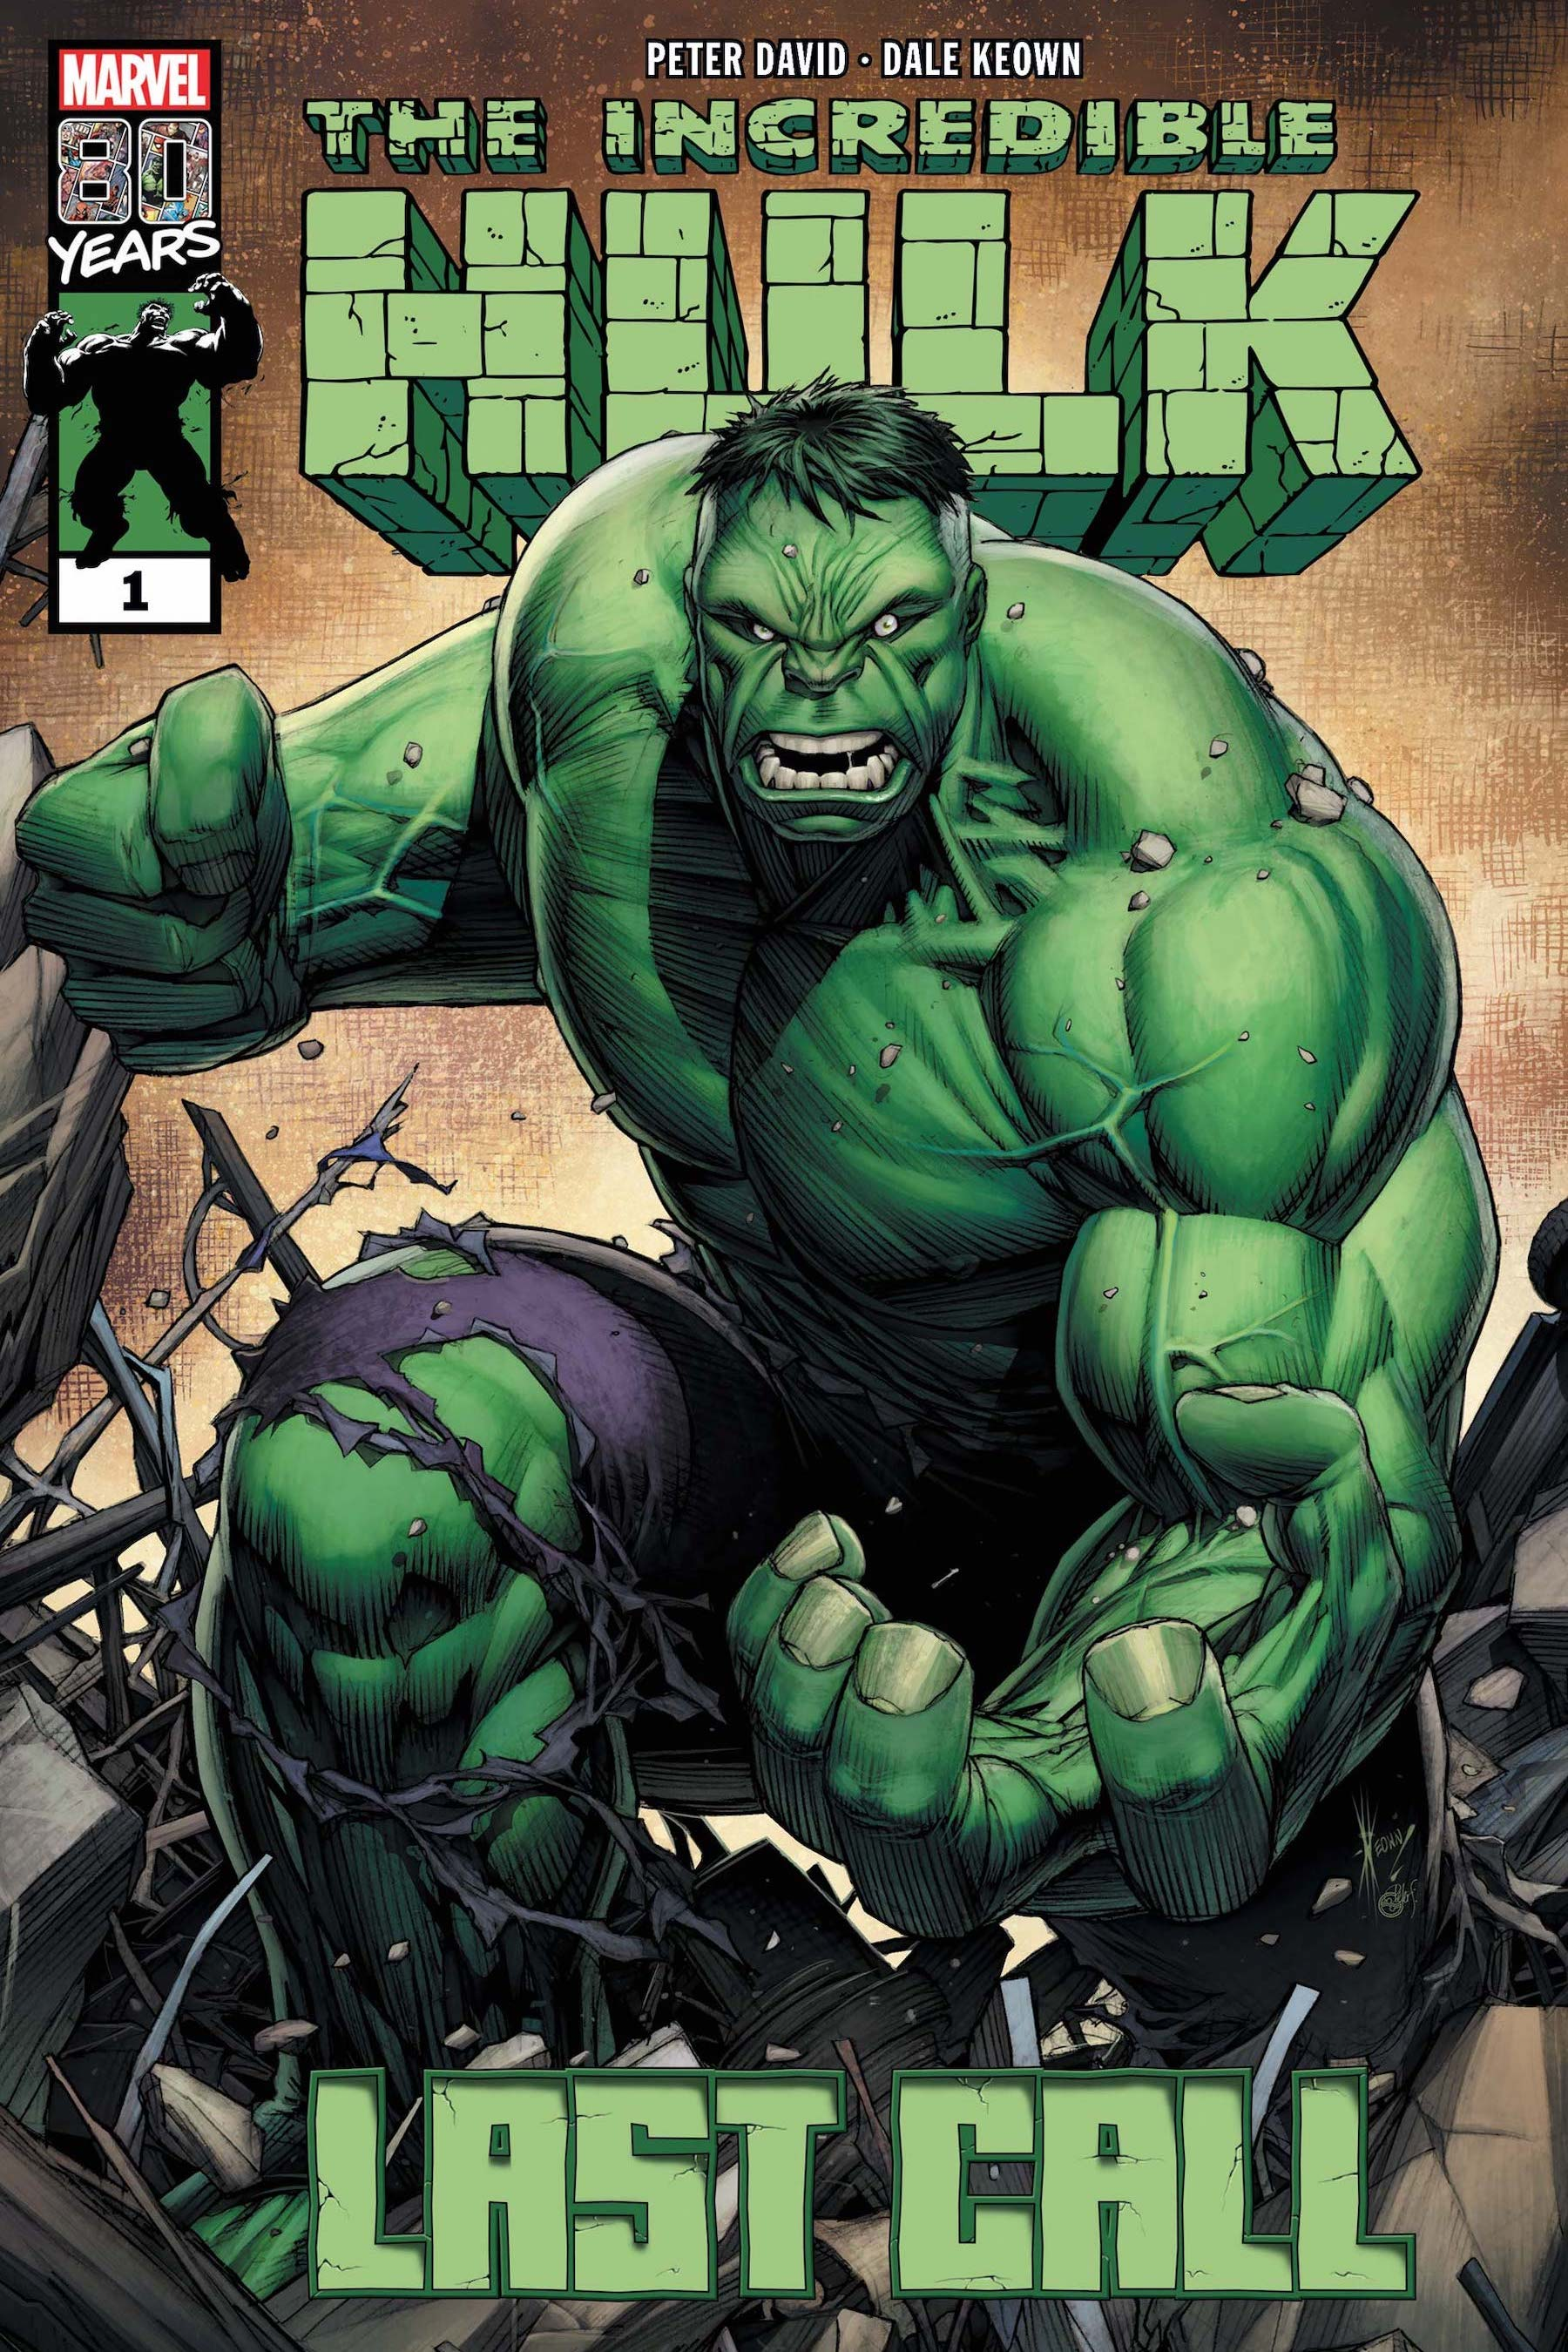 Jeremiah Owusu-Koramoah by Ron Lim, Roberto Poggi, and Wil Quintana, after INCREDIBLE HULK: LAST CALL #1 by Dale Keown